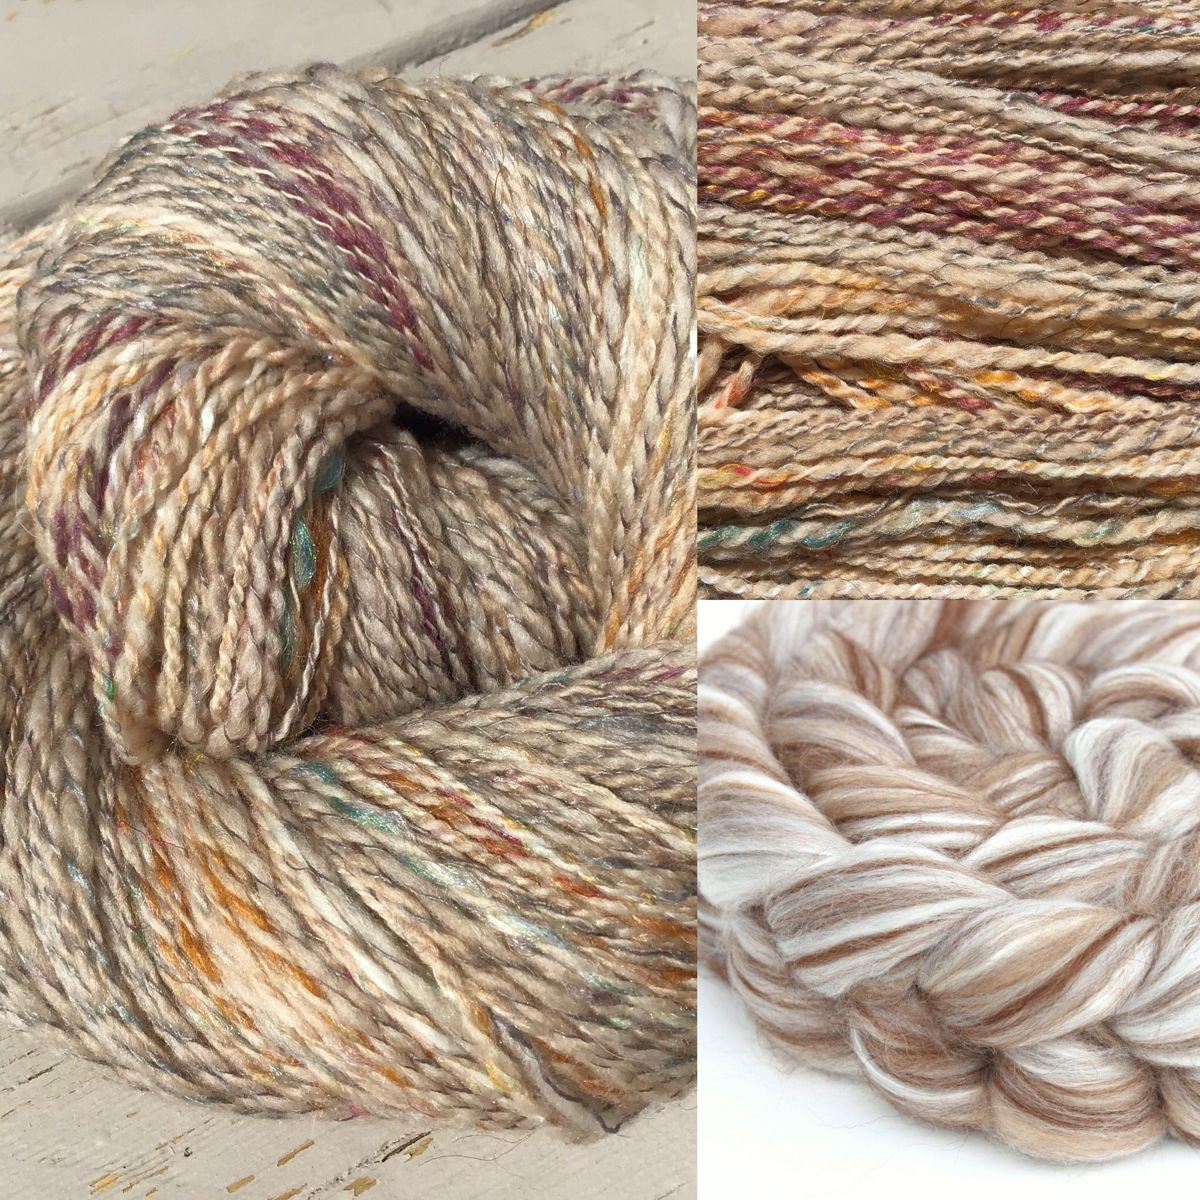 This is our beautiful natural coloured camel blend plyed with a multicolored strand of handspun.  This skein is so soft and just a little sparkly.  #handspun #handspunyarn #handspunstagram #handspunfiber #thefiberimp #merino #merinowool #spinning #wool